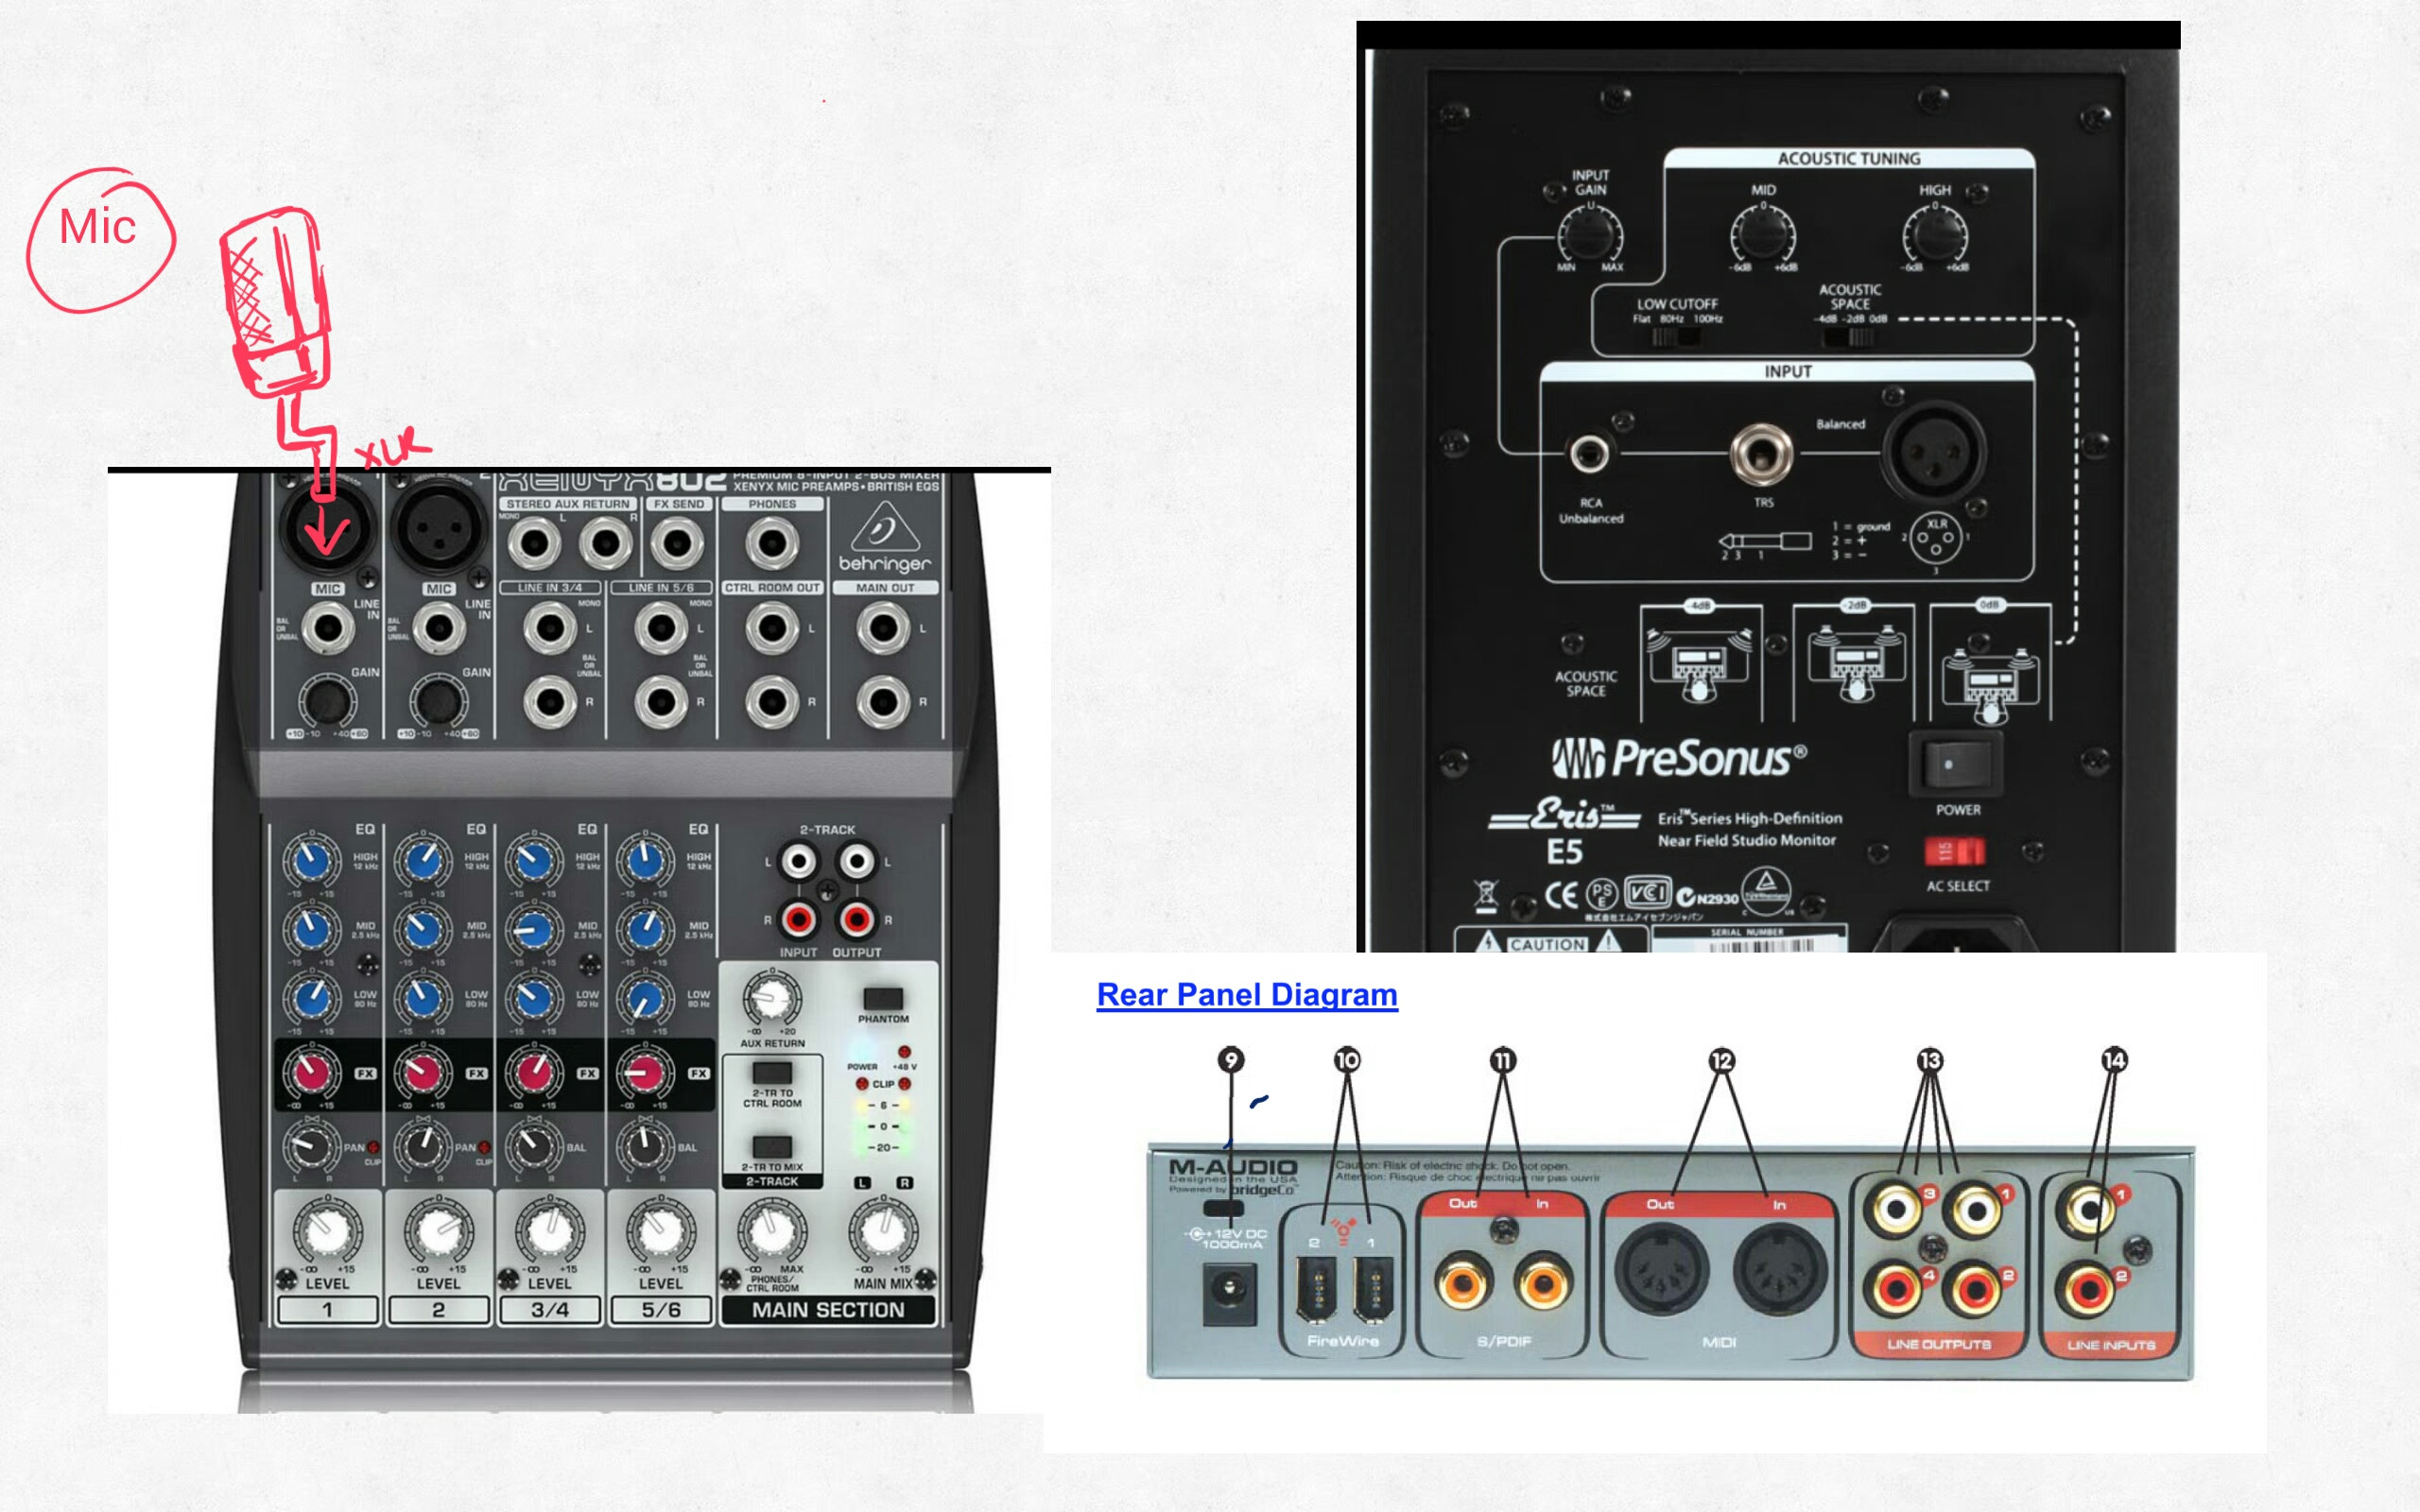 How to cable/connect mixer to sound card & speakers - Gearslutz ...